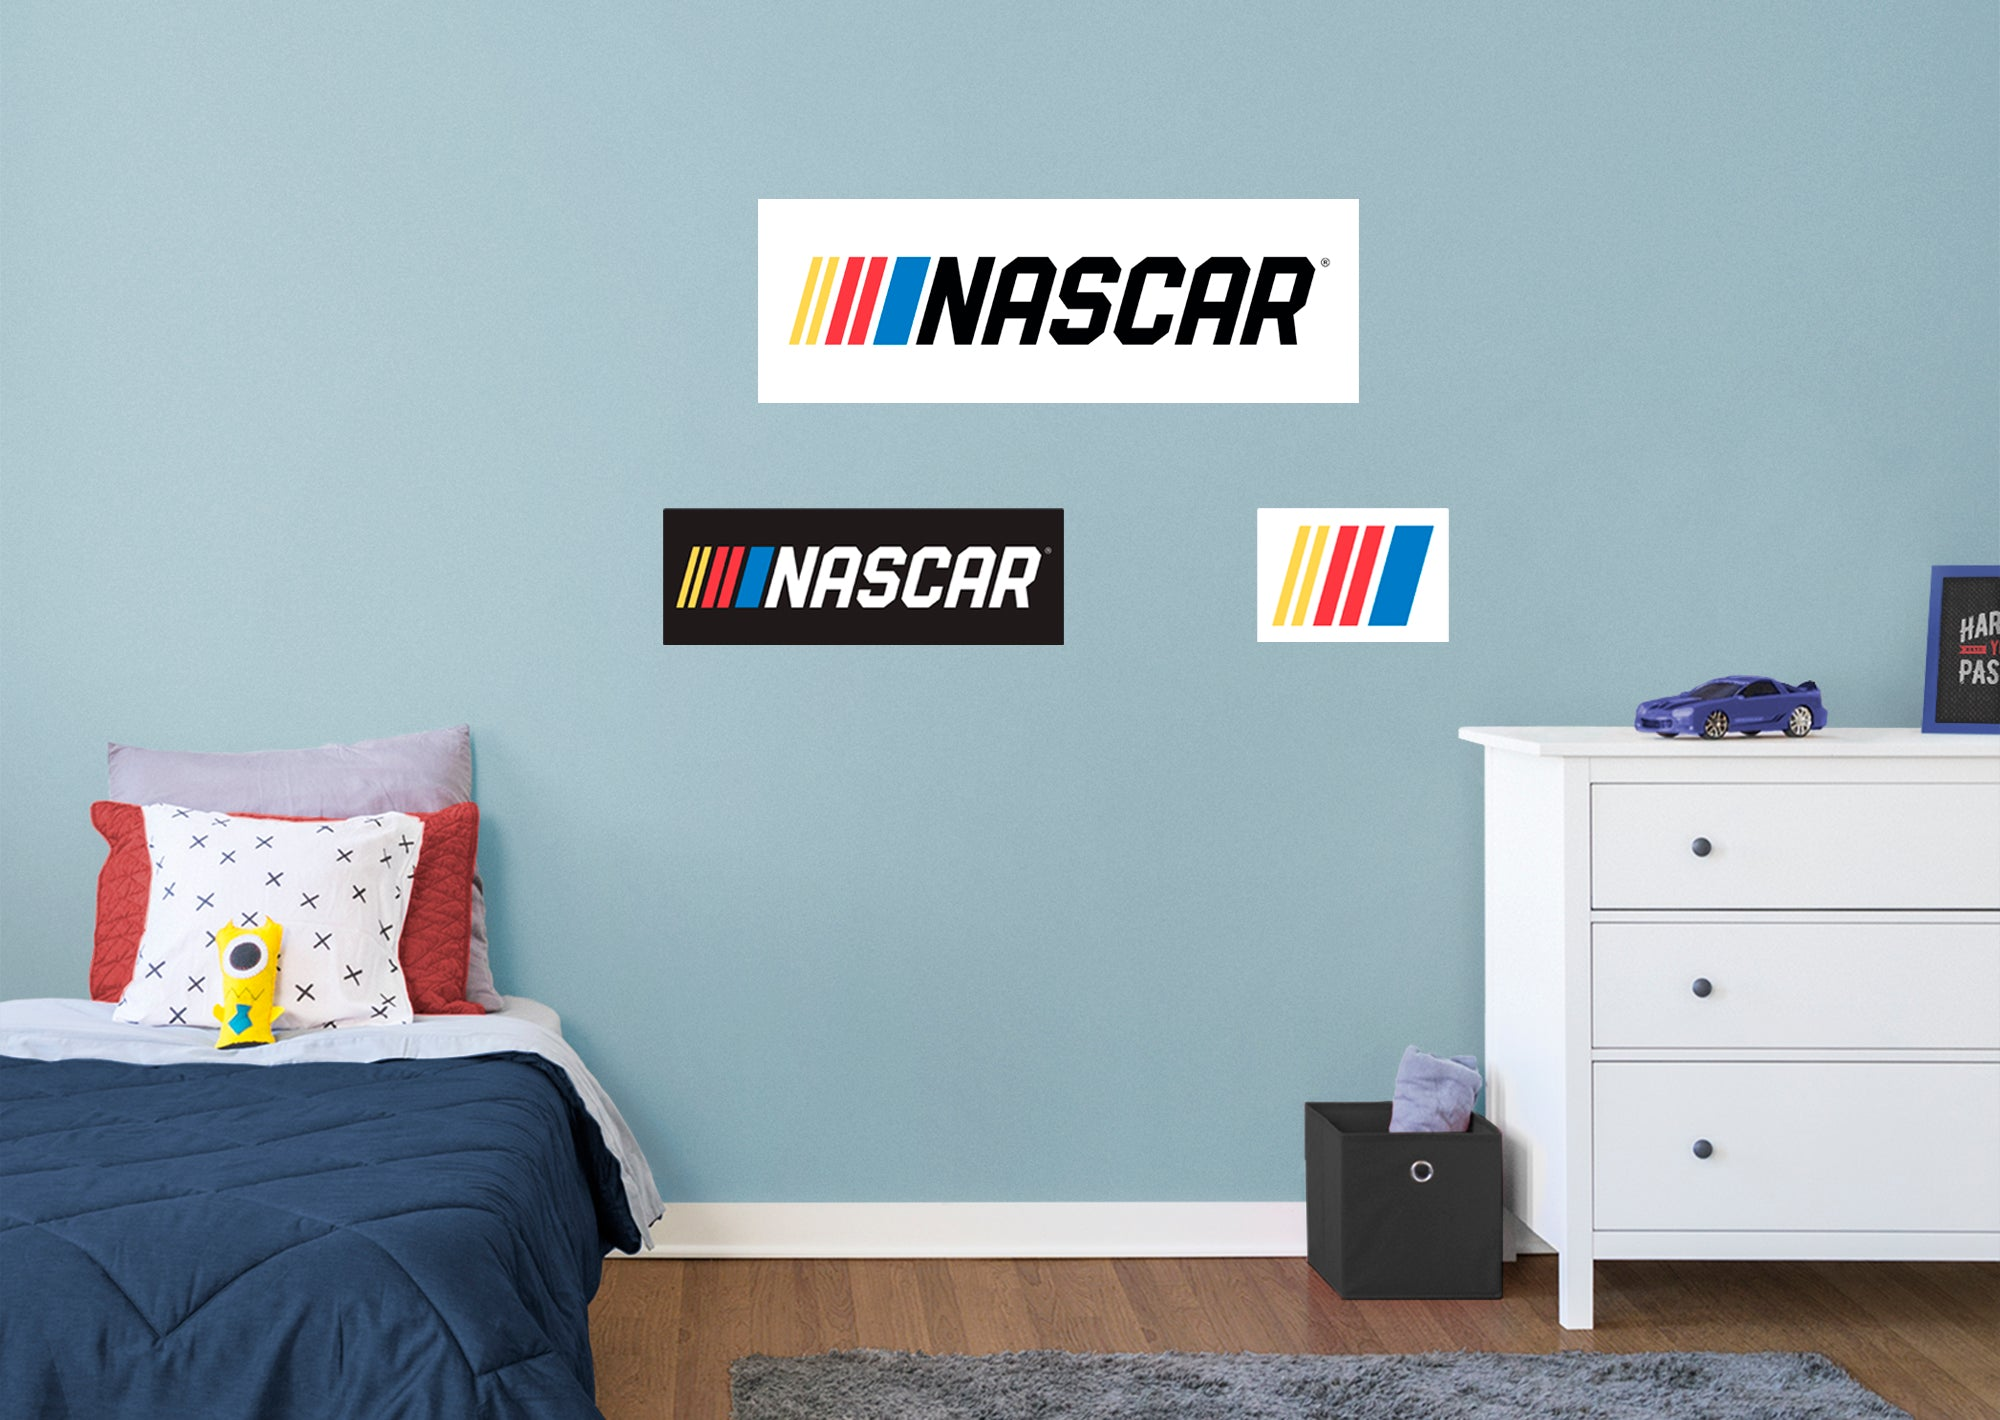 """2021 Bar Logo - Officially Licensed NASCAR Removable Wall Decal Giant Logo + 2 Decals (51""""W x 17""""H) by Fathead   Vinyl"""